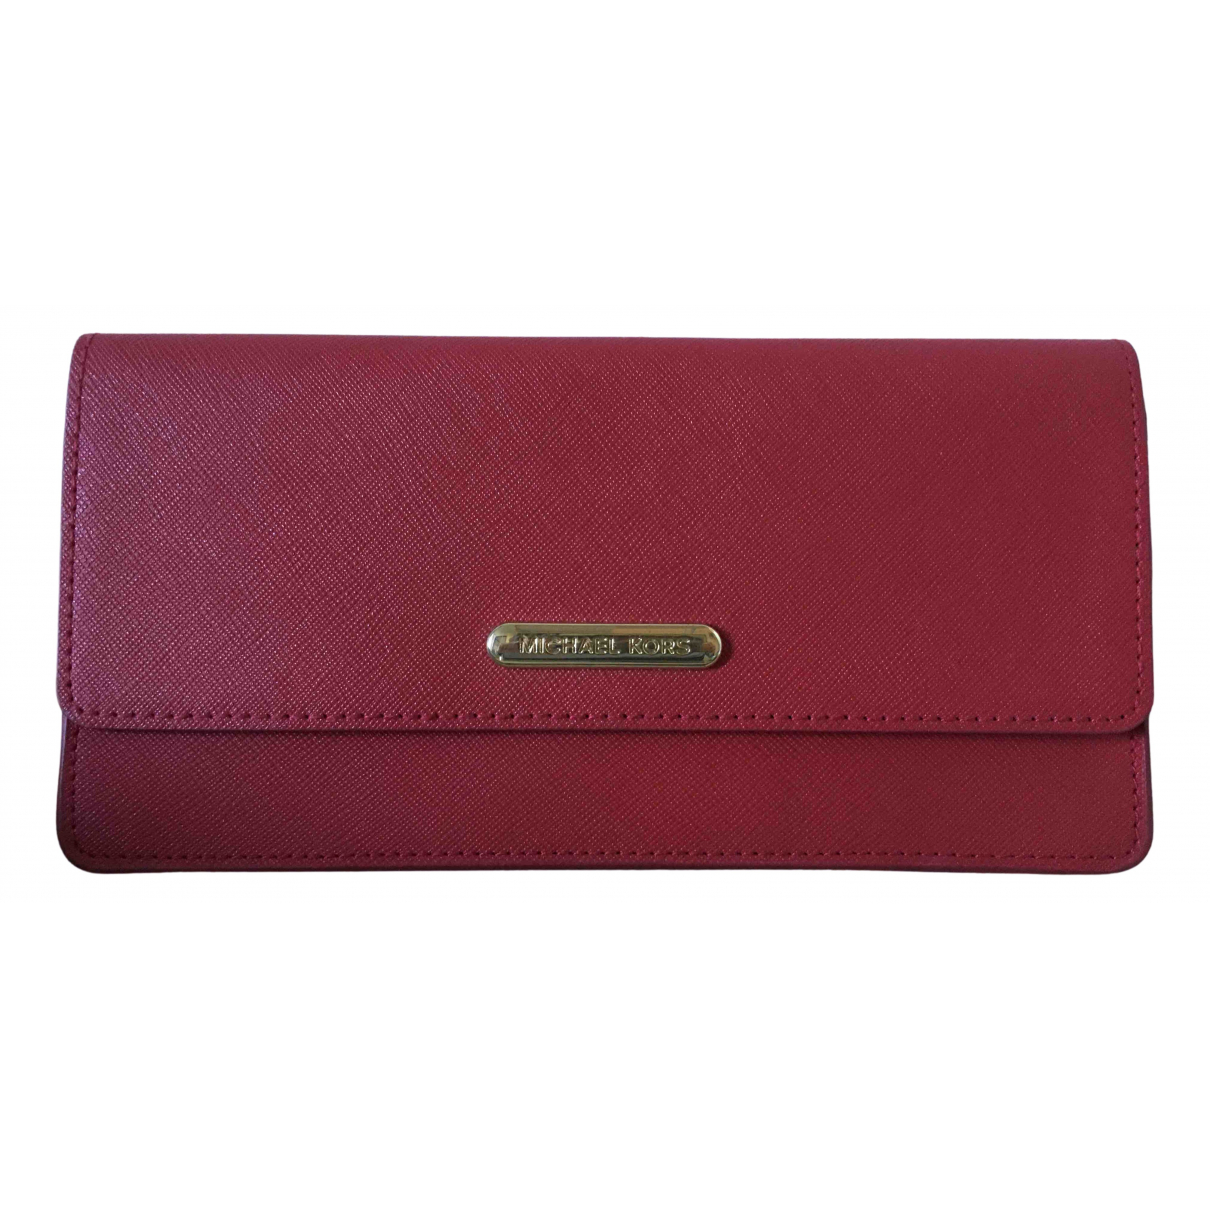 Michael Kors N Red Leather Clutch bag for Women N